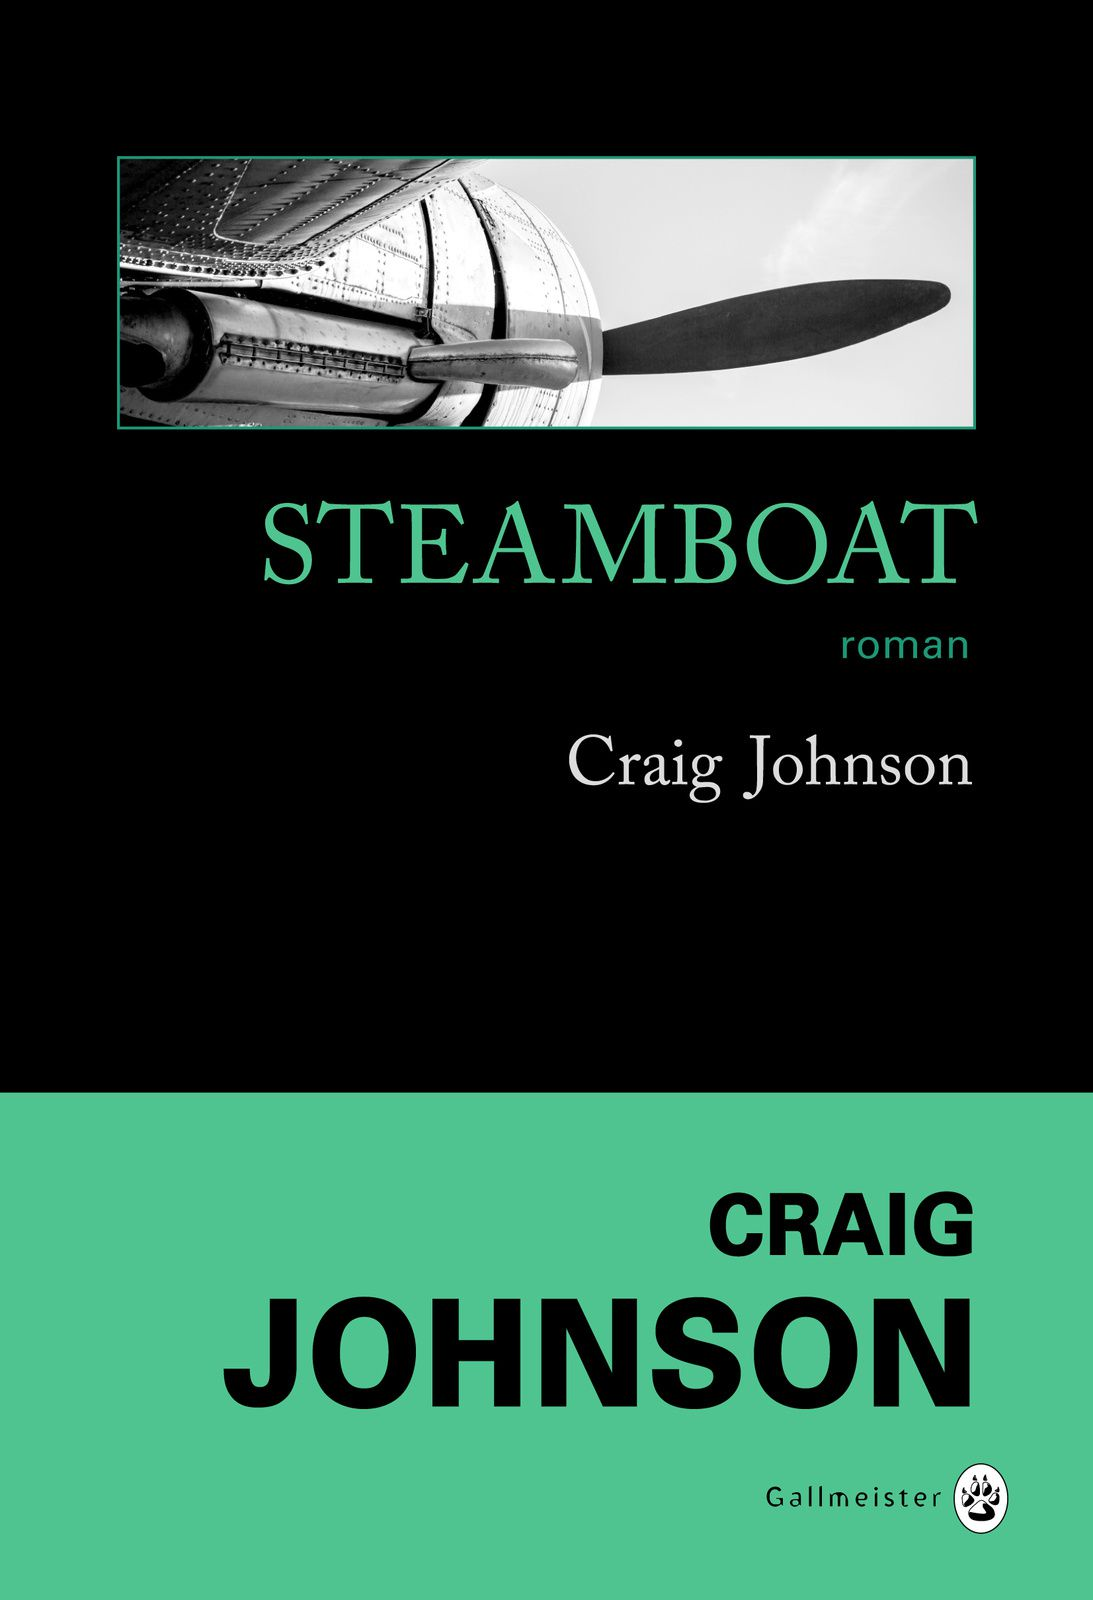 [le billet] Craig Johnson